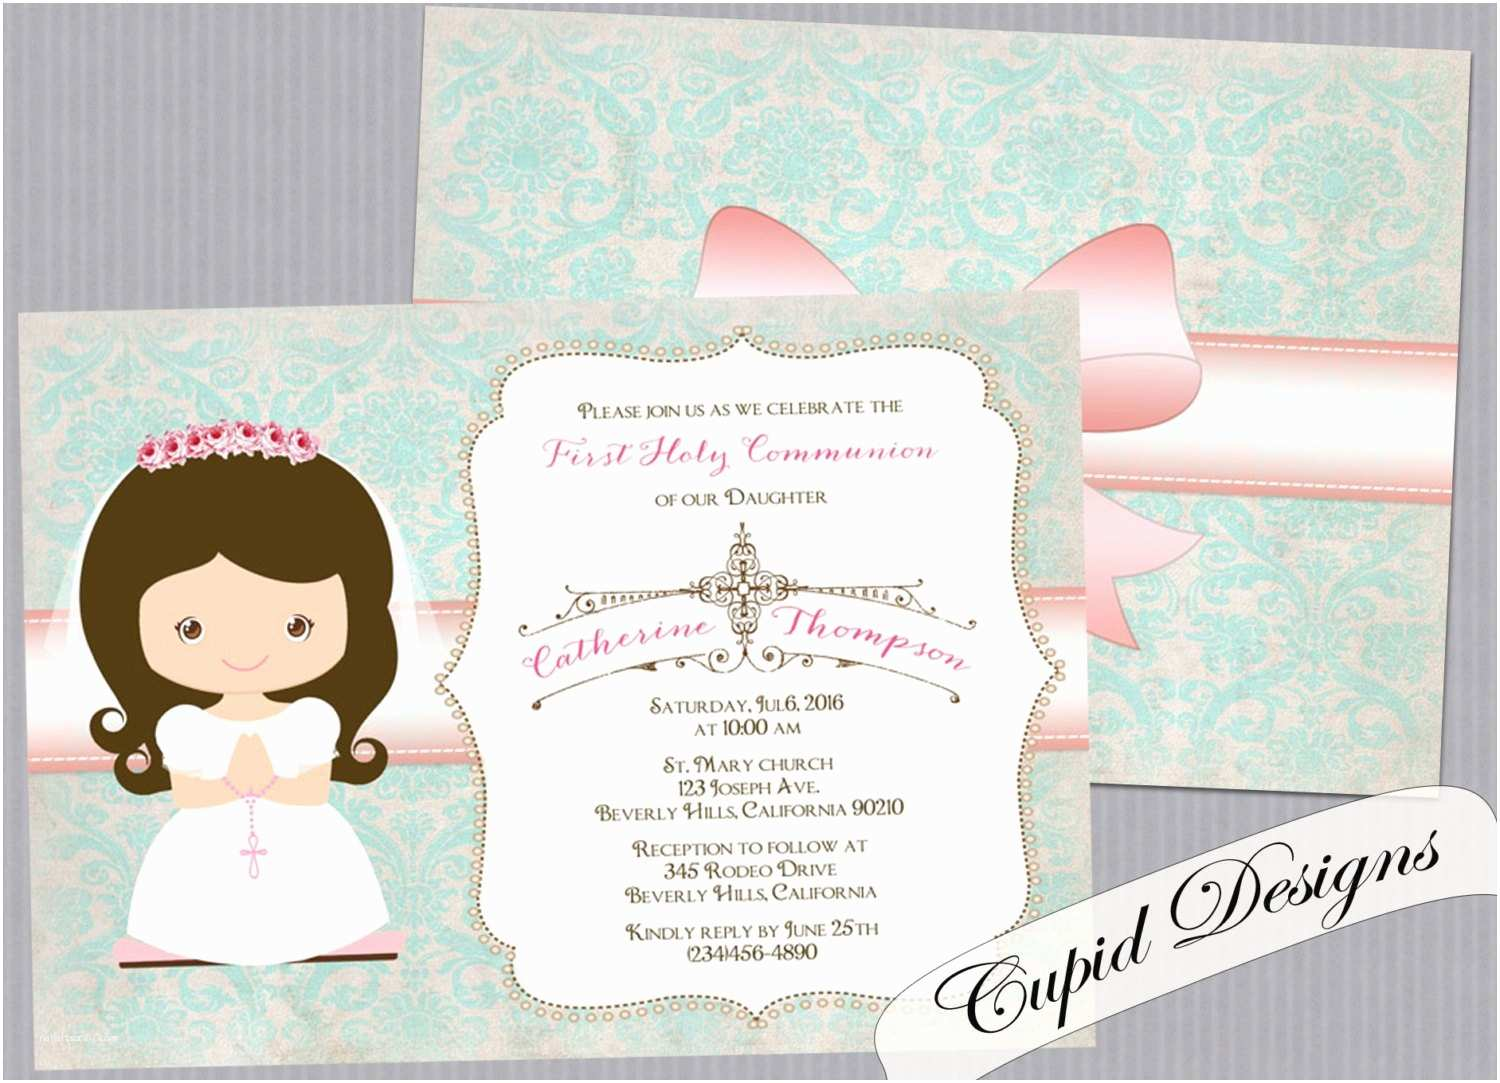 Communion Invitations for Girl Girl First Munion Invitation Invitation for First Holy